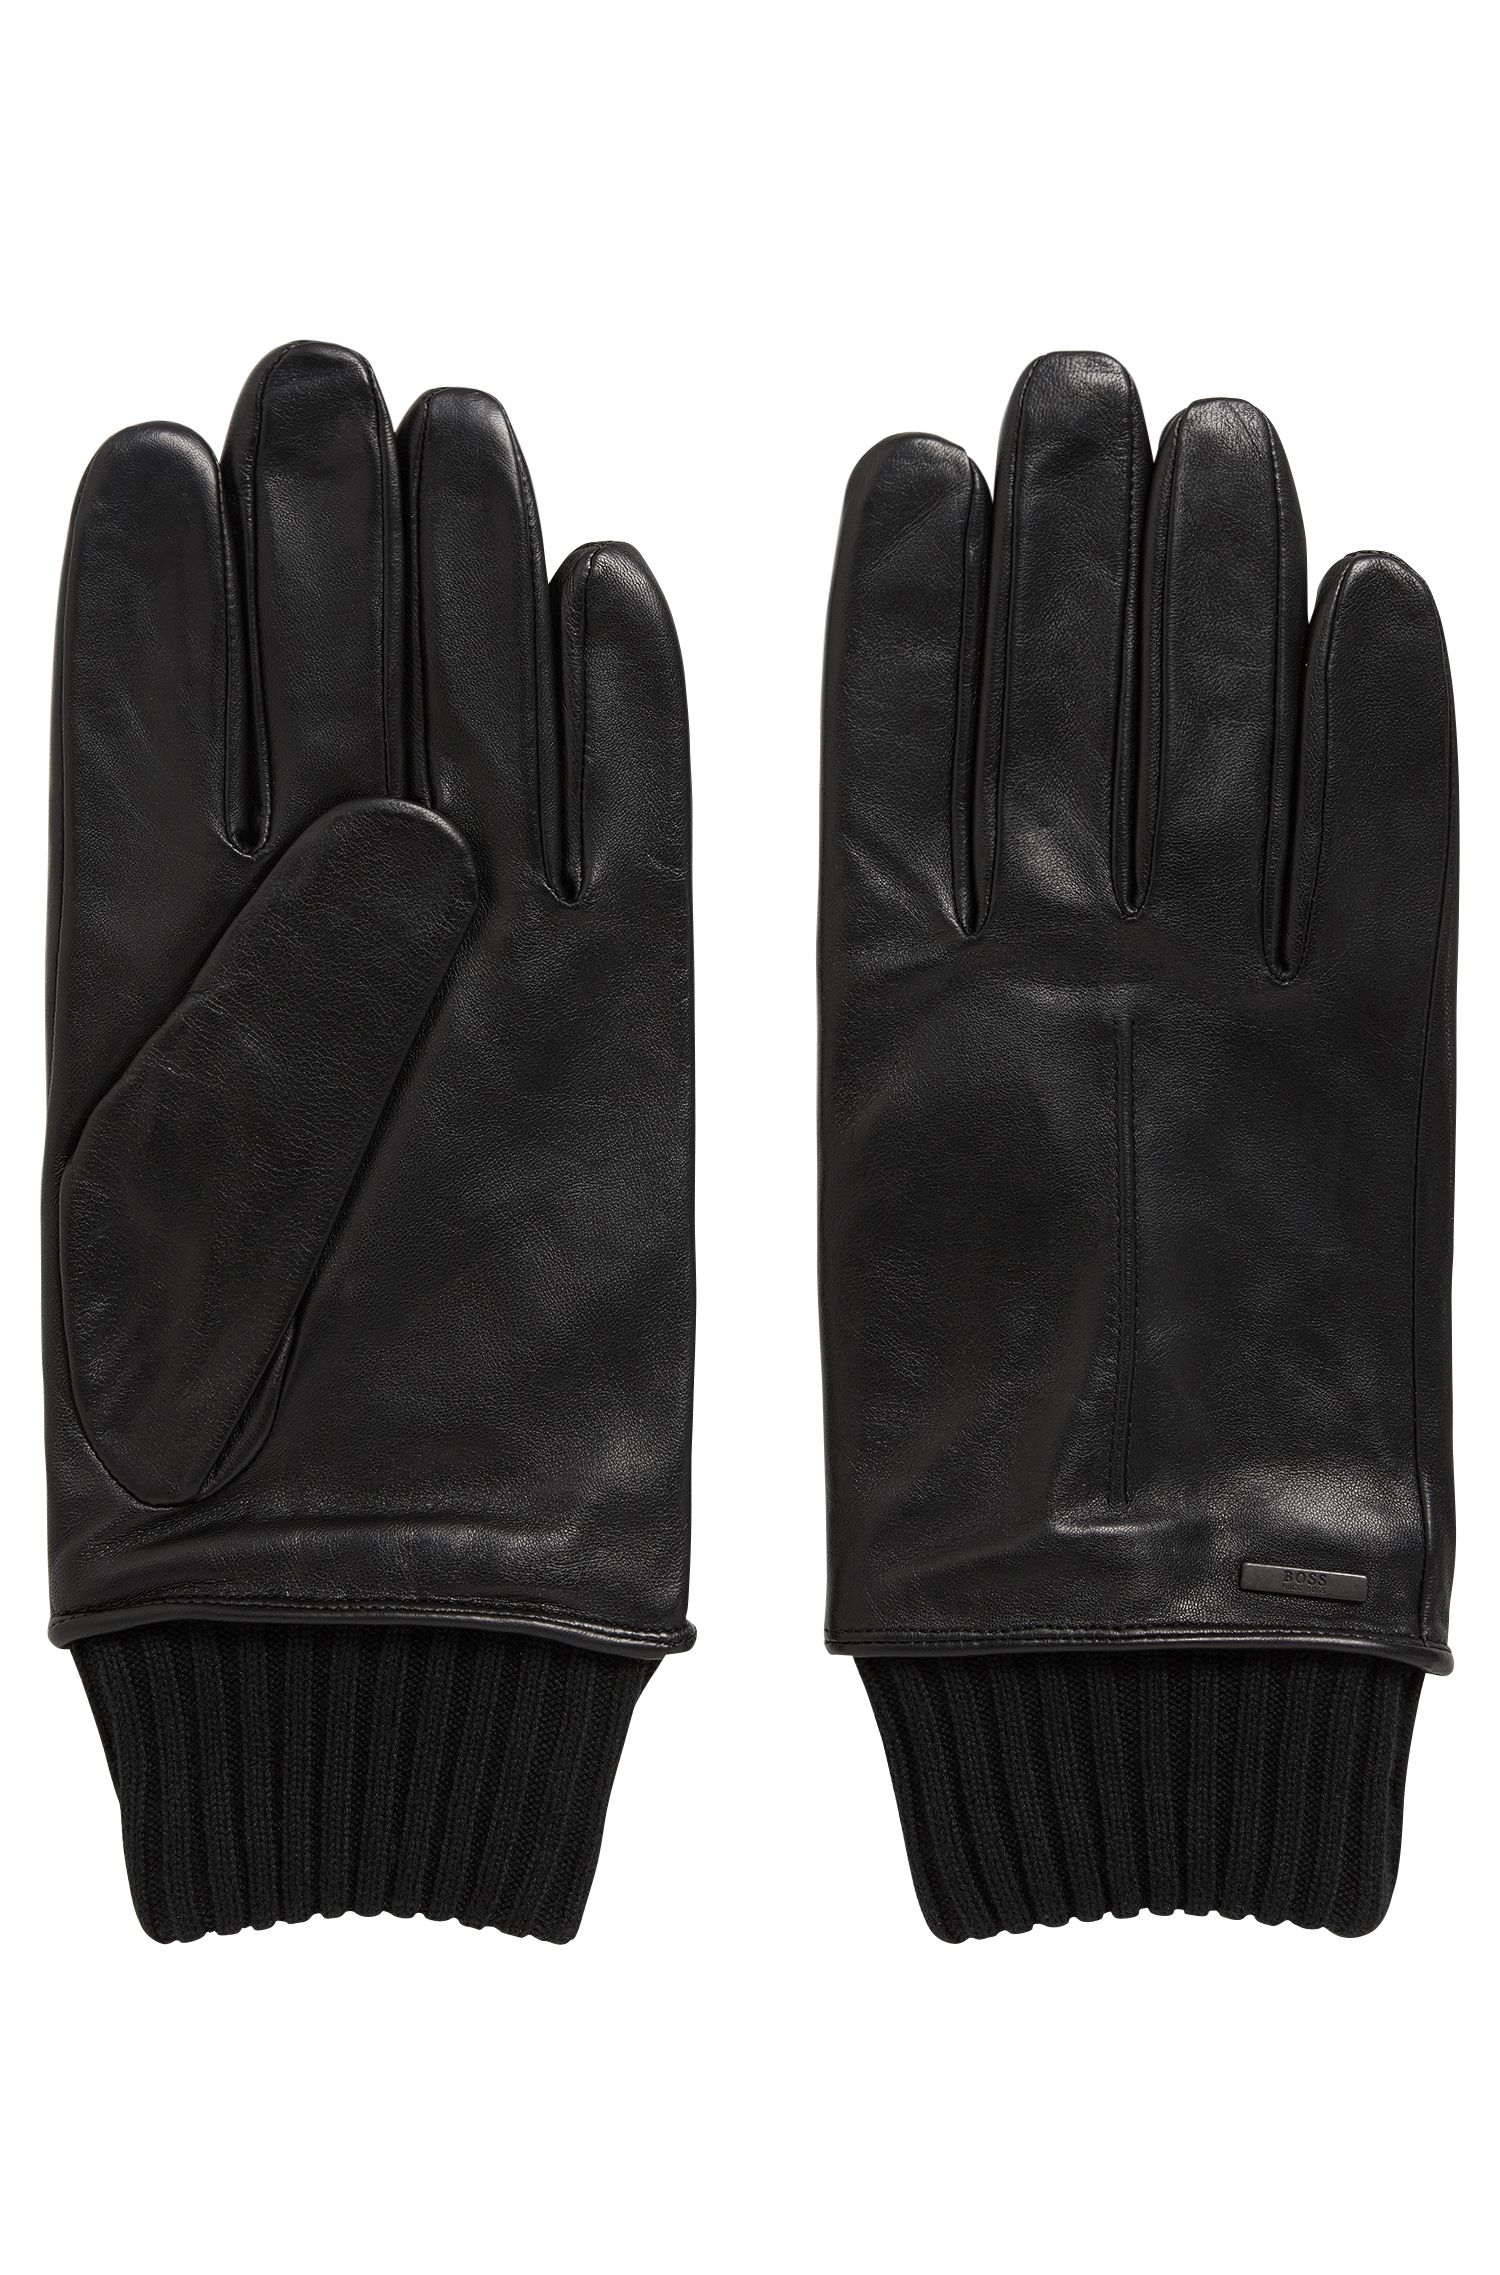 Lambskin leather gloves with knitted cuffs